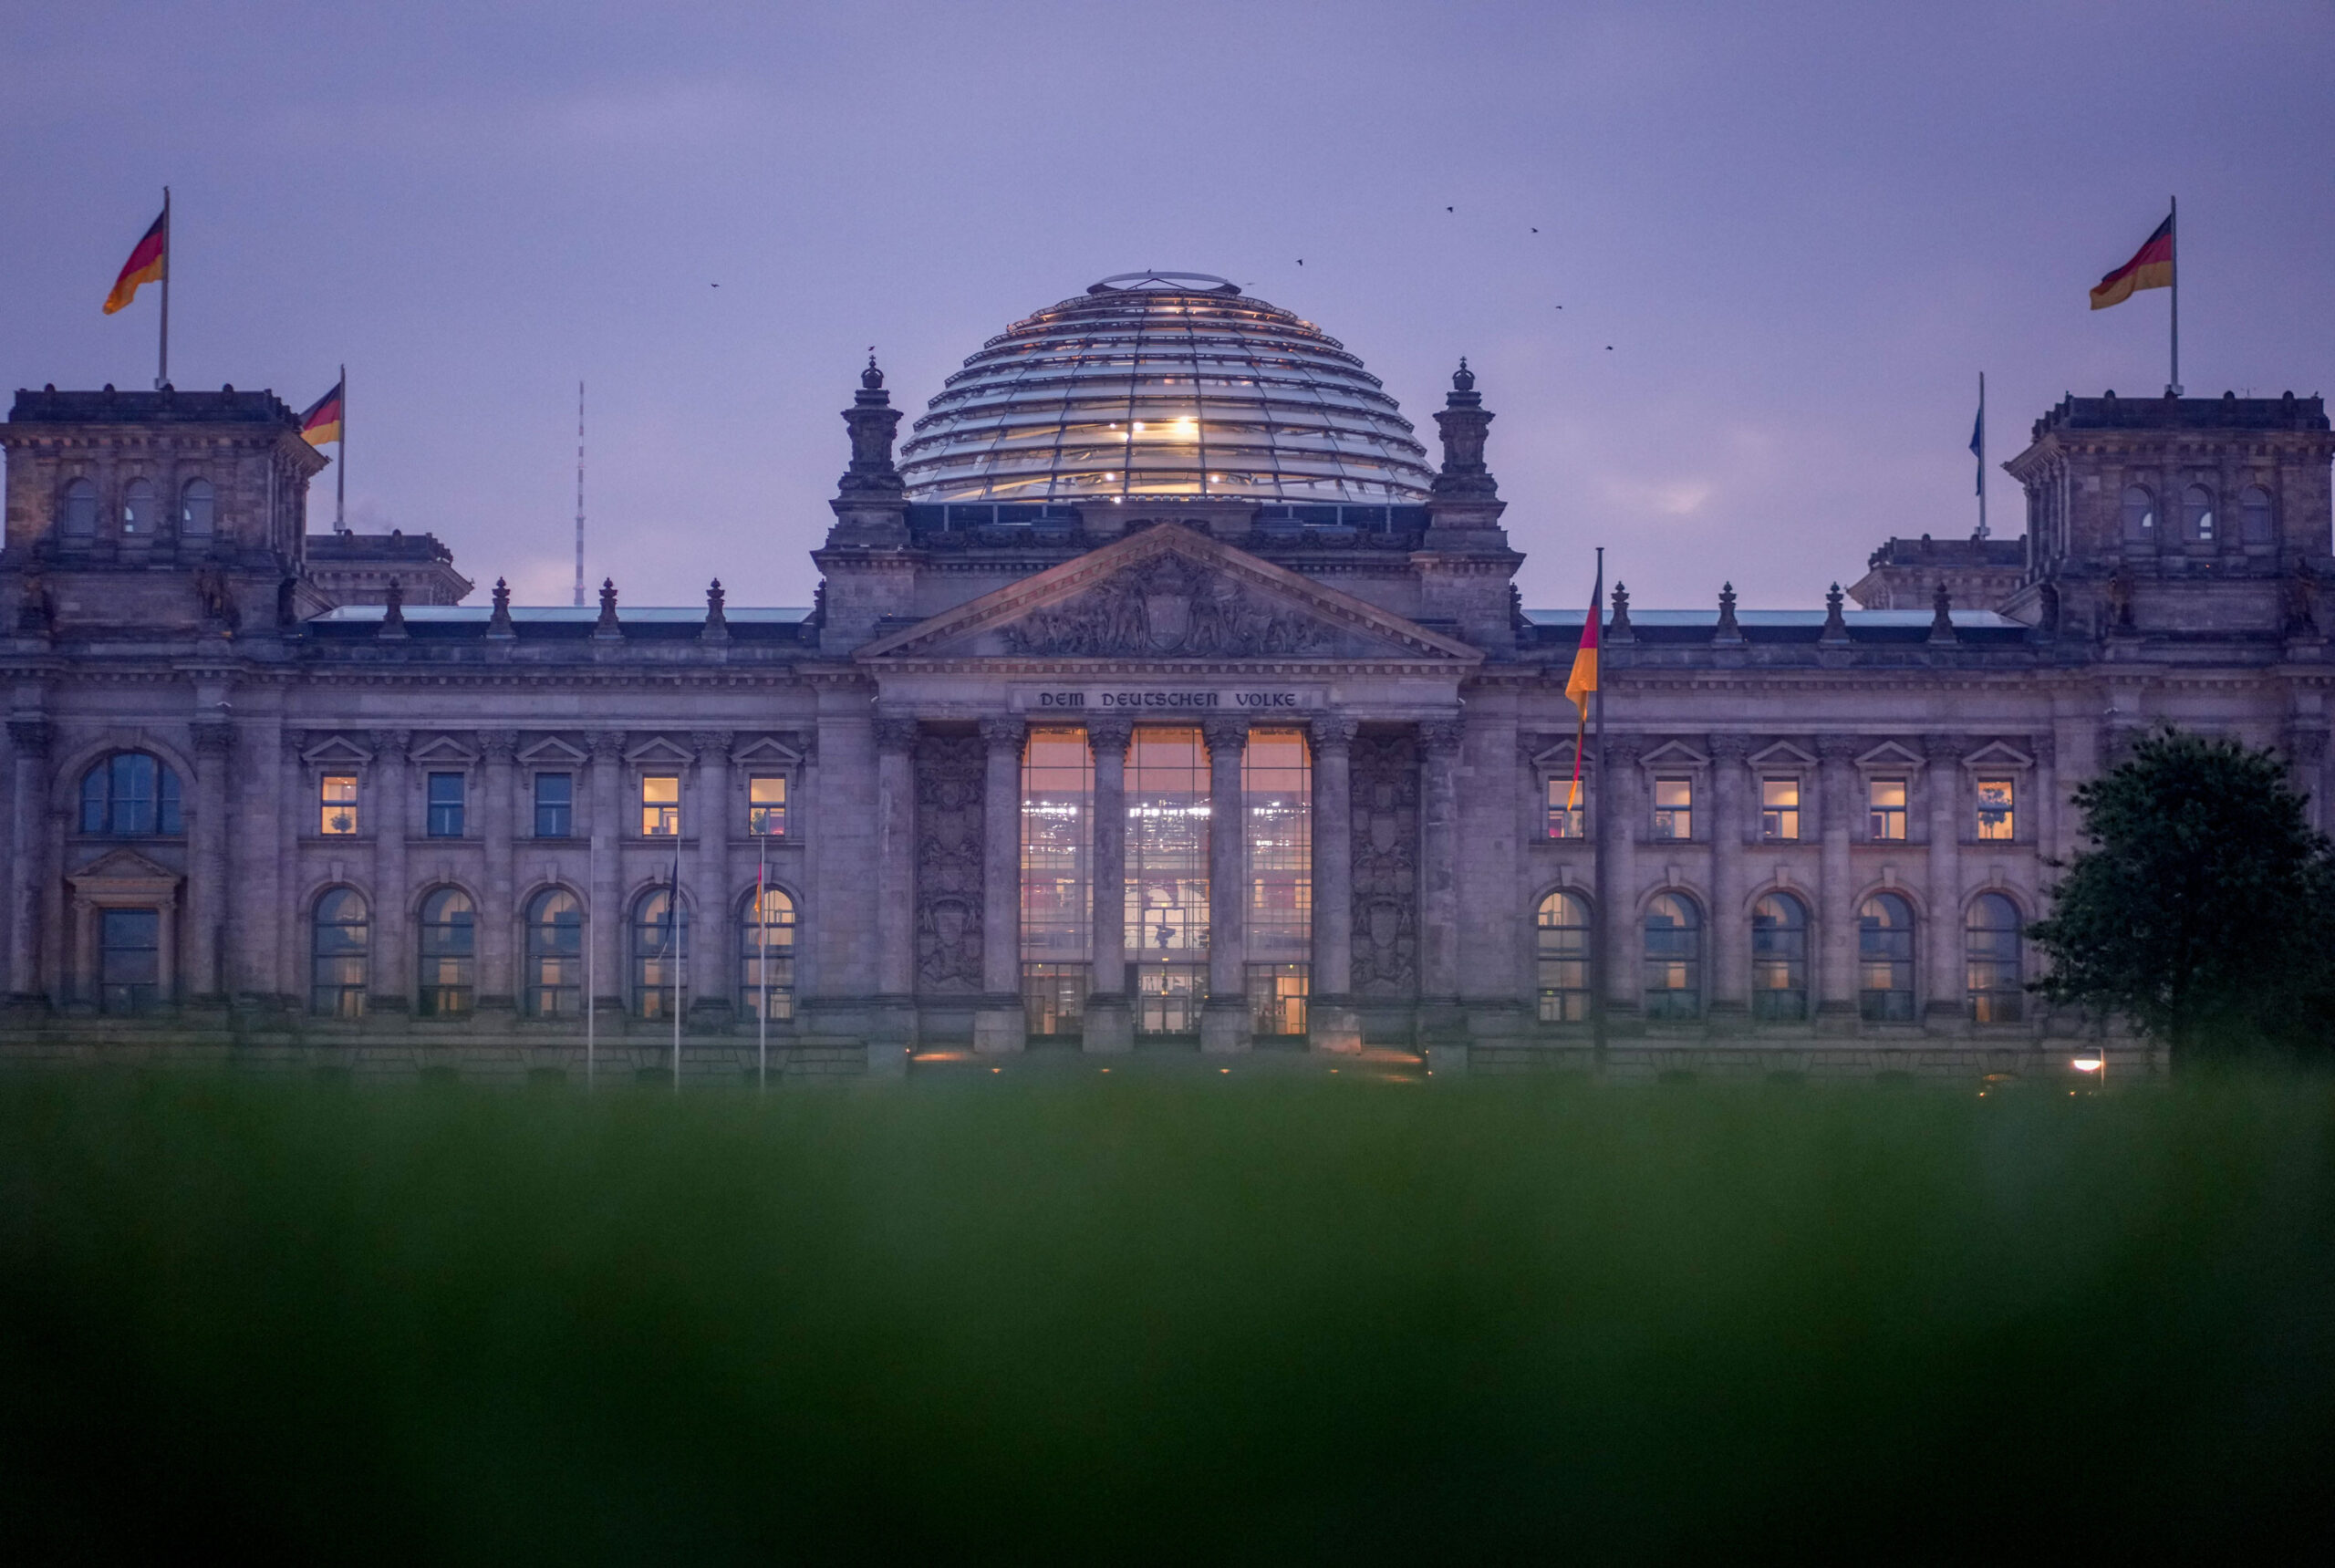 <i>Kay Nietfeld/Picture Alliance/Getty Images</i><br/>The Reichstag building in Berlin